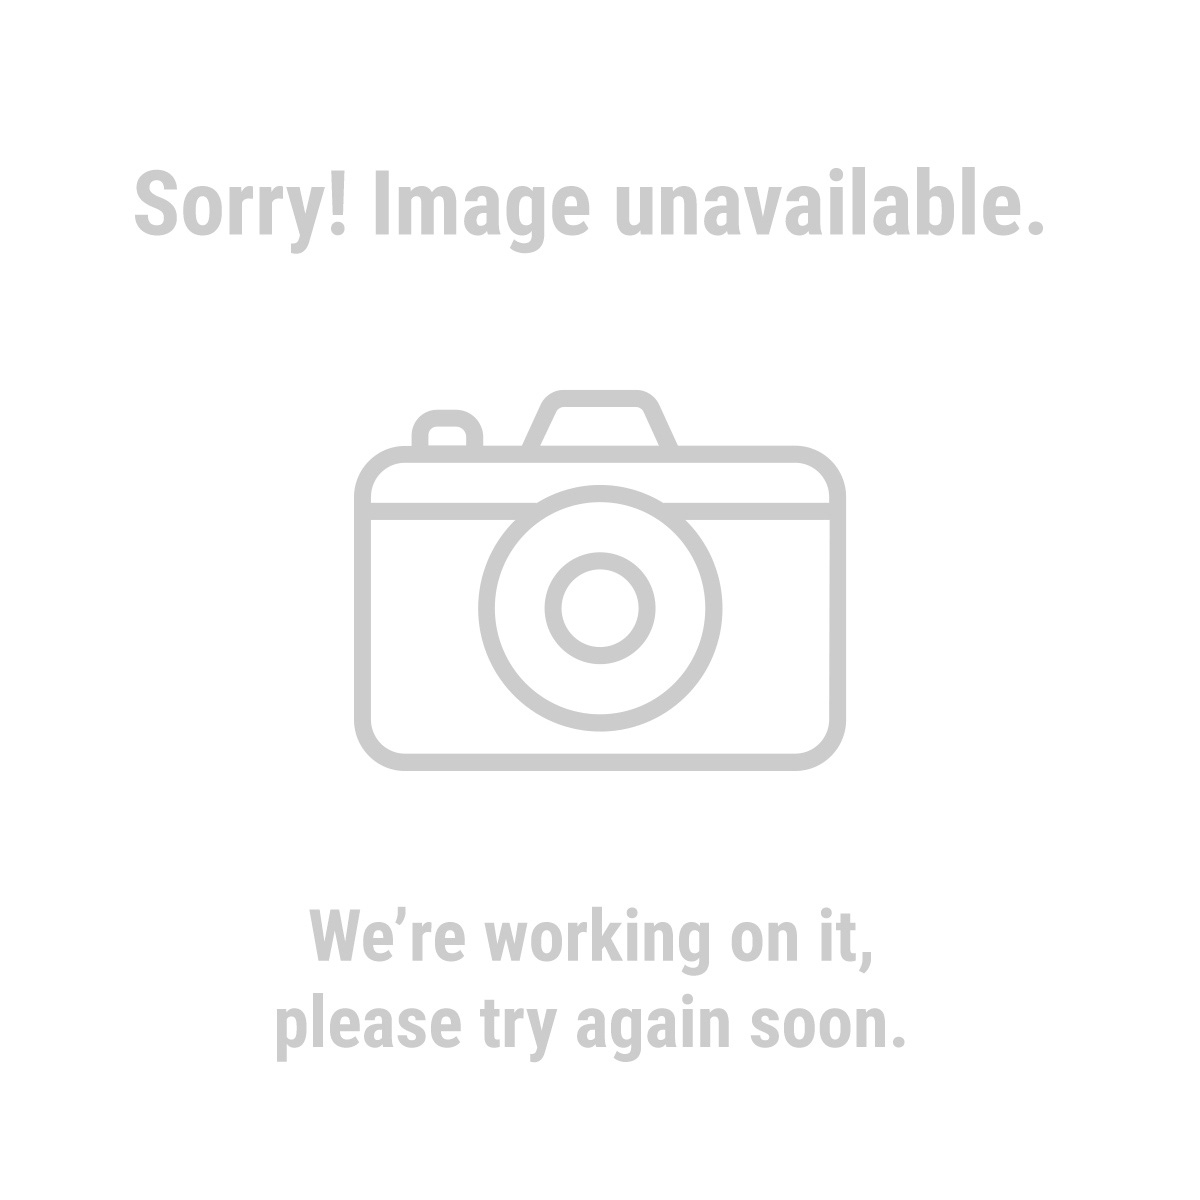 50 Ft. Compact Electric Drain Cleaner K Sewer Machine Wiring Diagram on